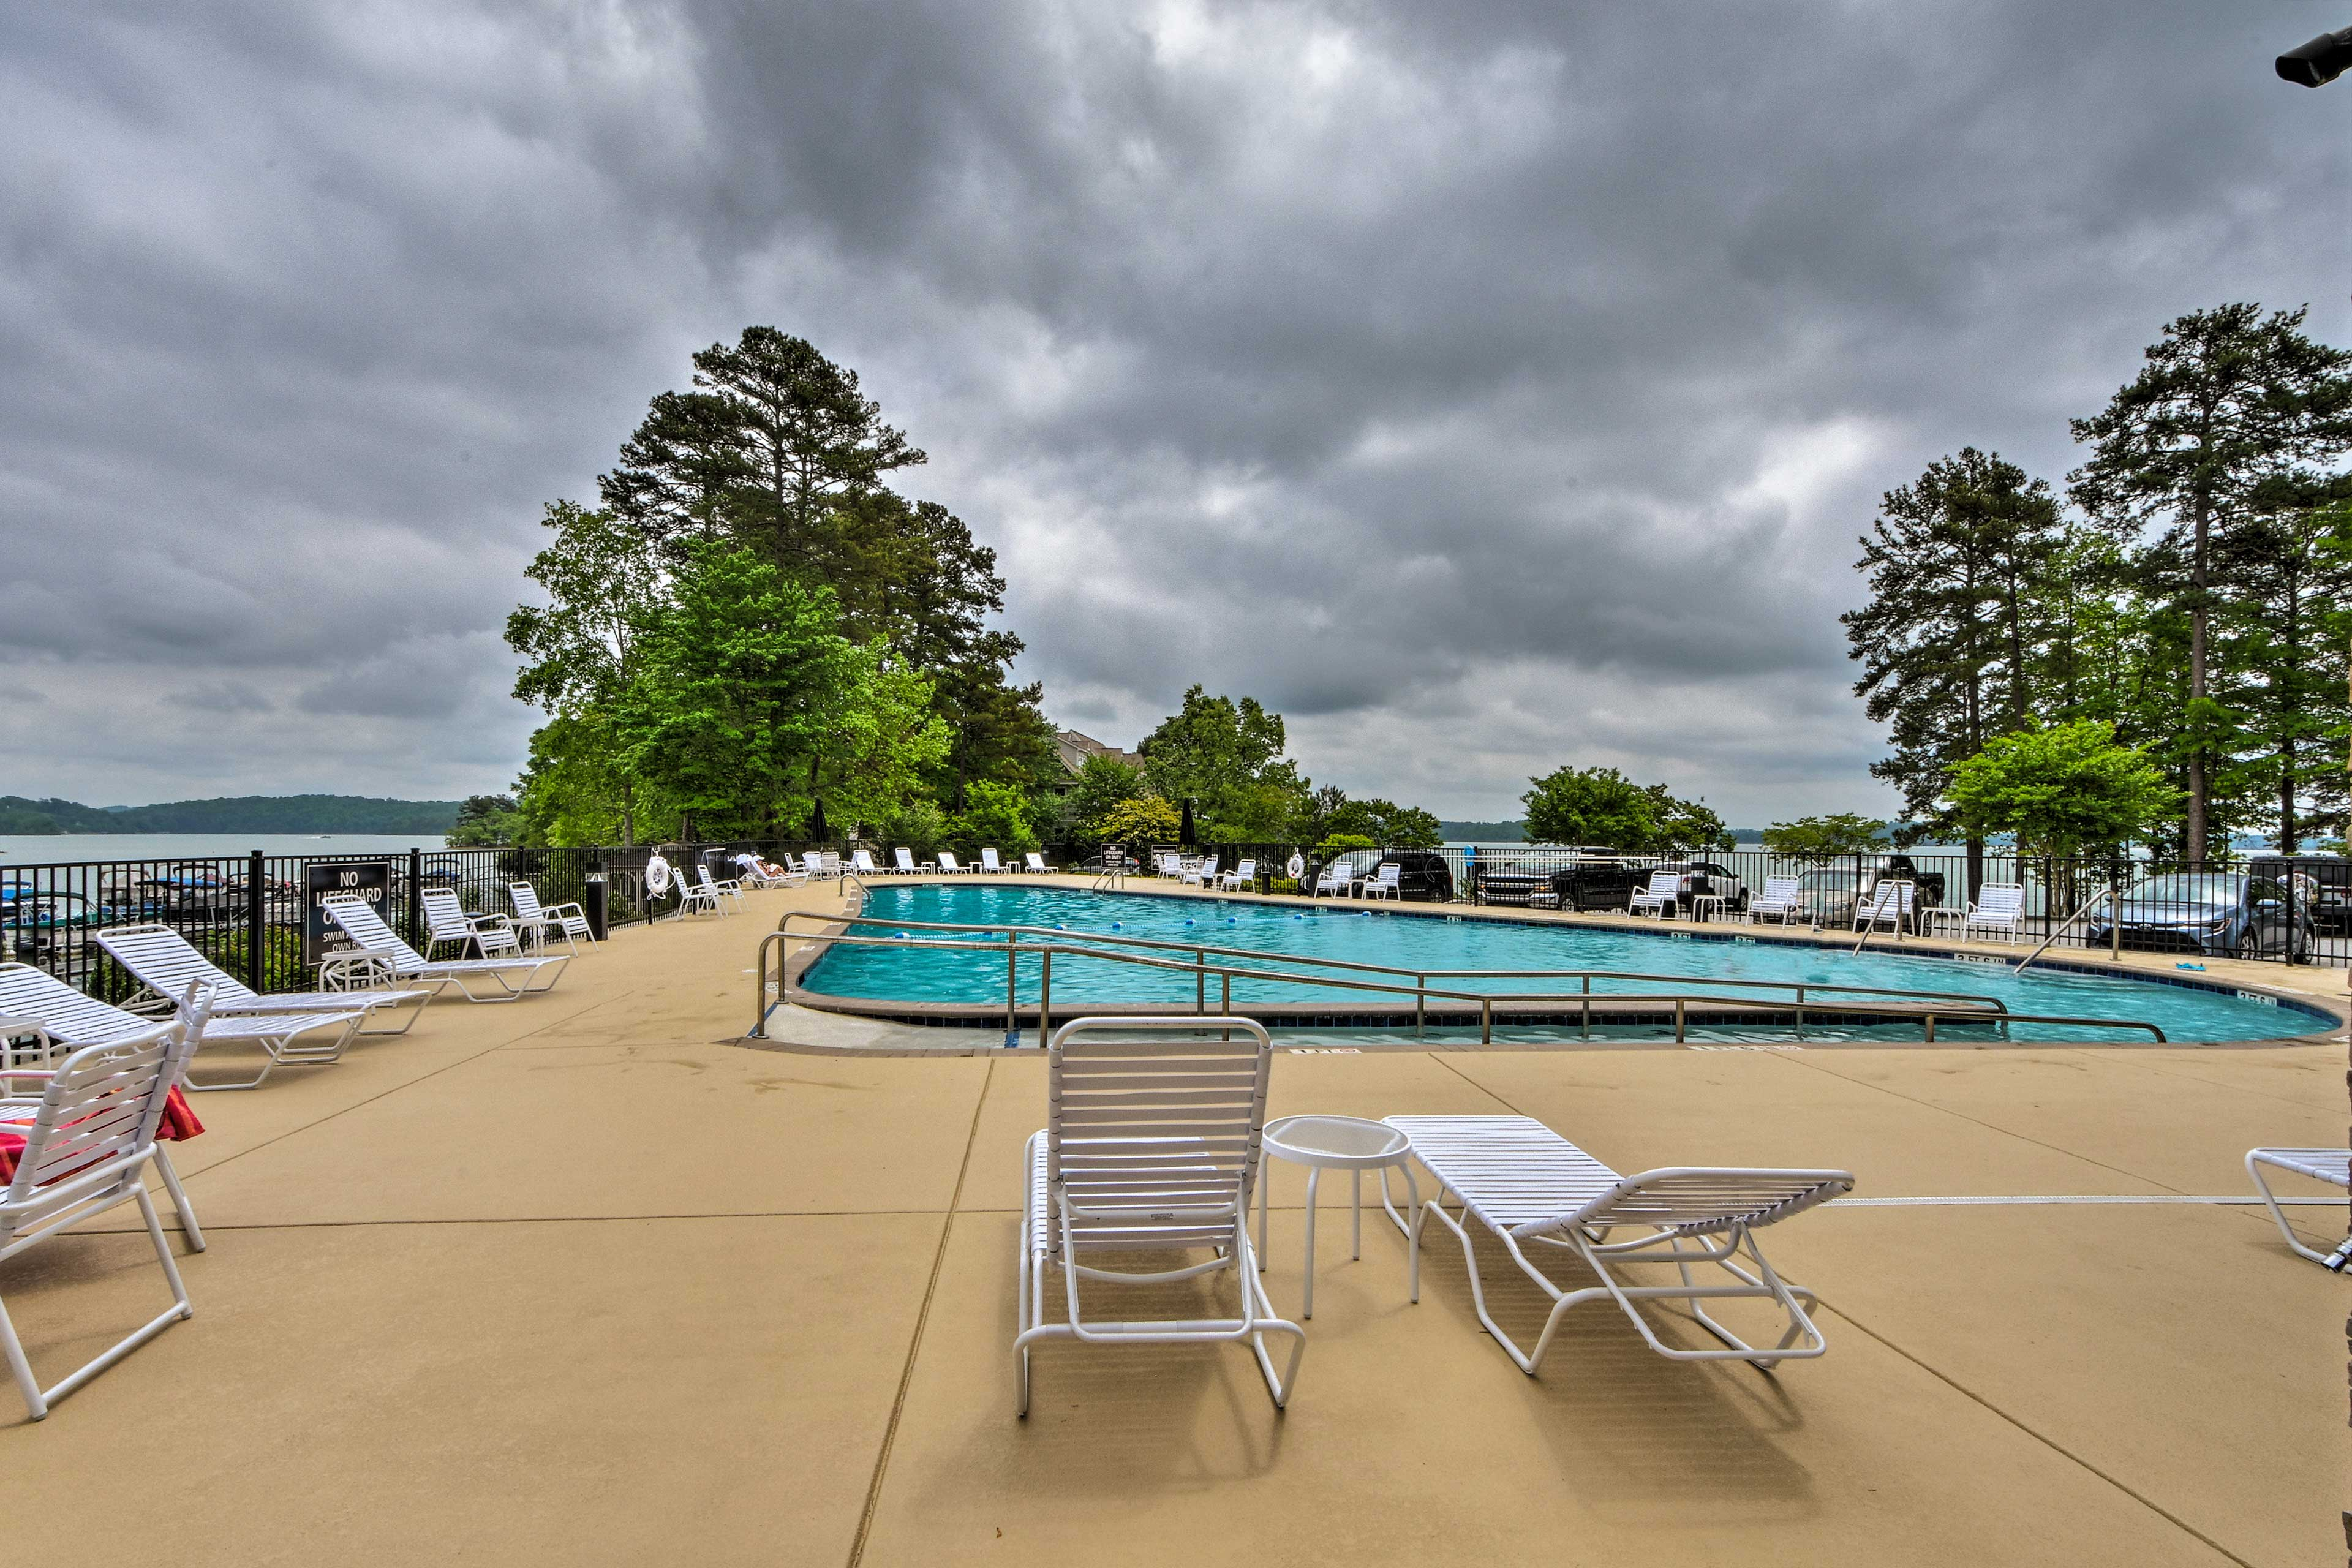 Dive into the community pool at the Tall Ship Condos complex!